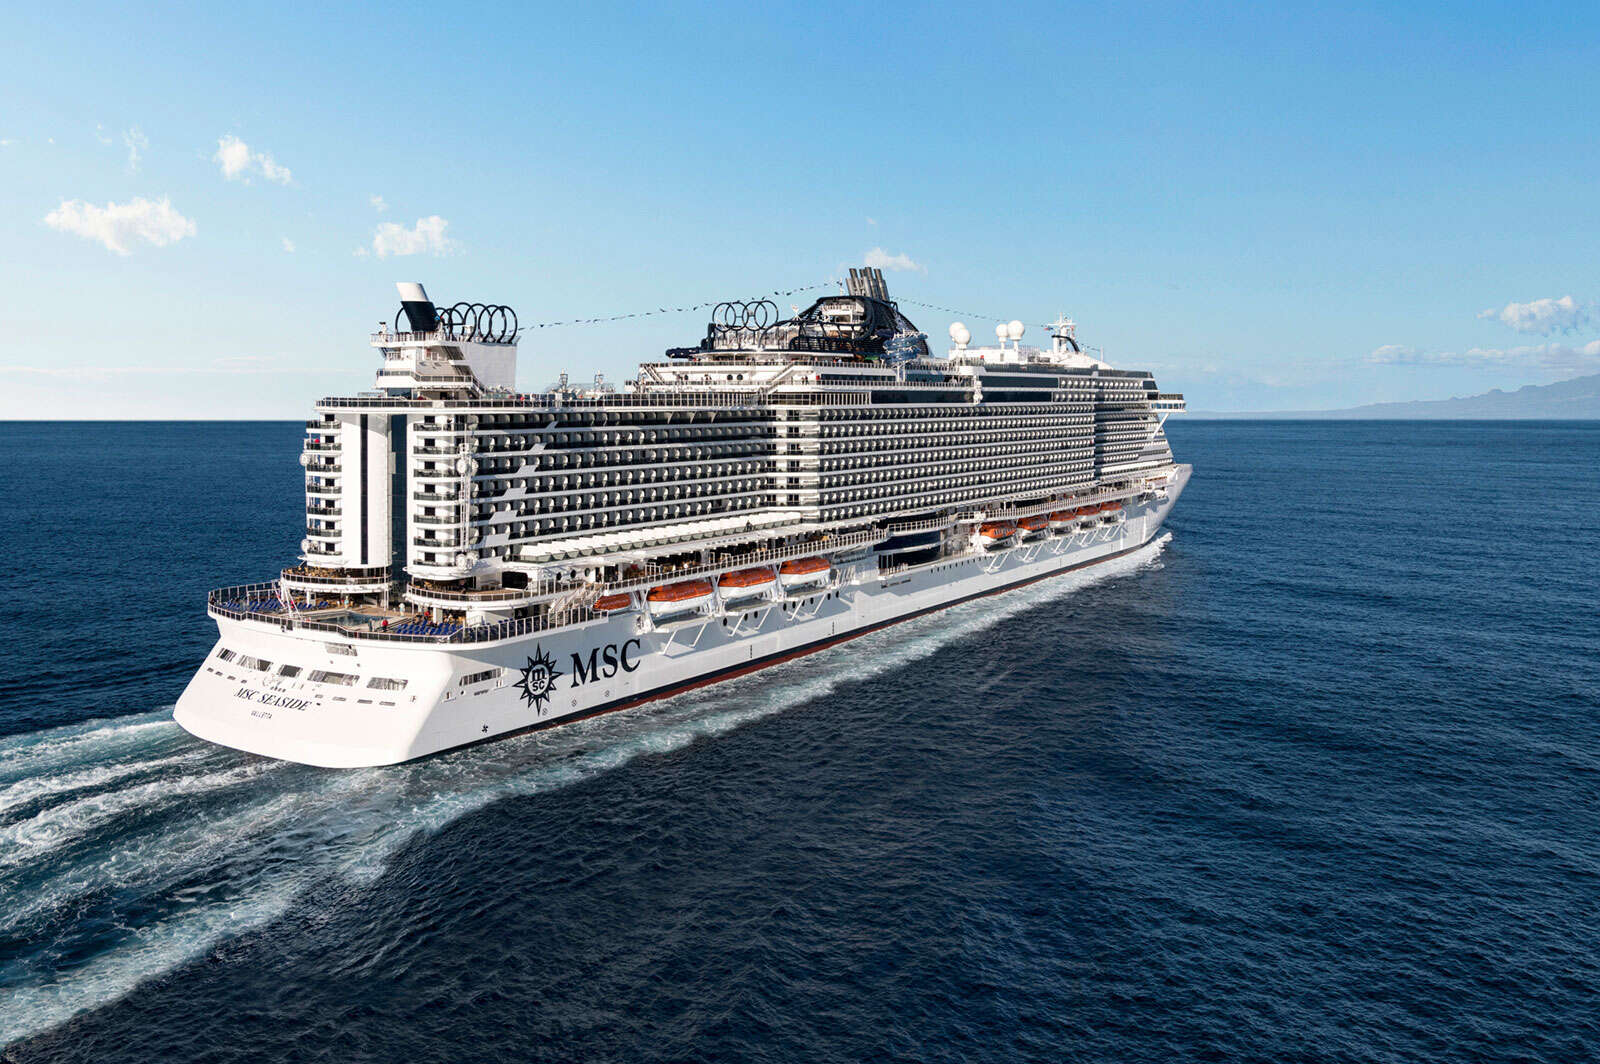 MSC - ESCAPE TO SEA - OUR BEST RATES ON CARIBBEAN CRUISES